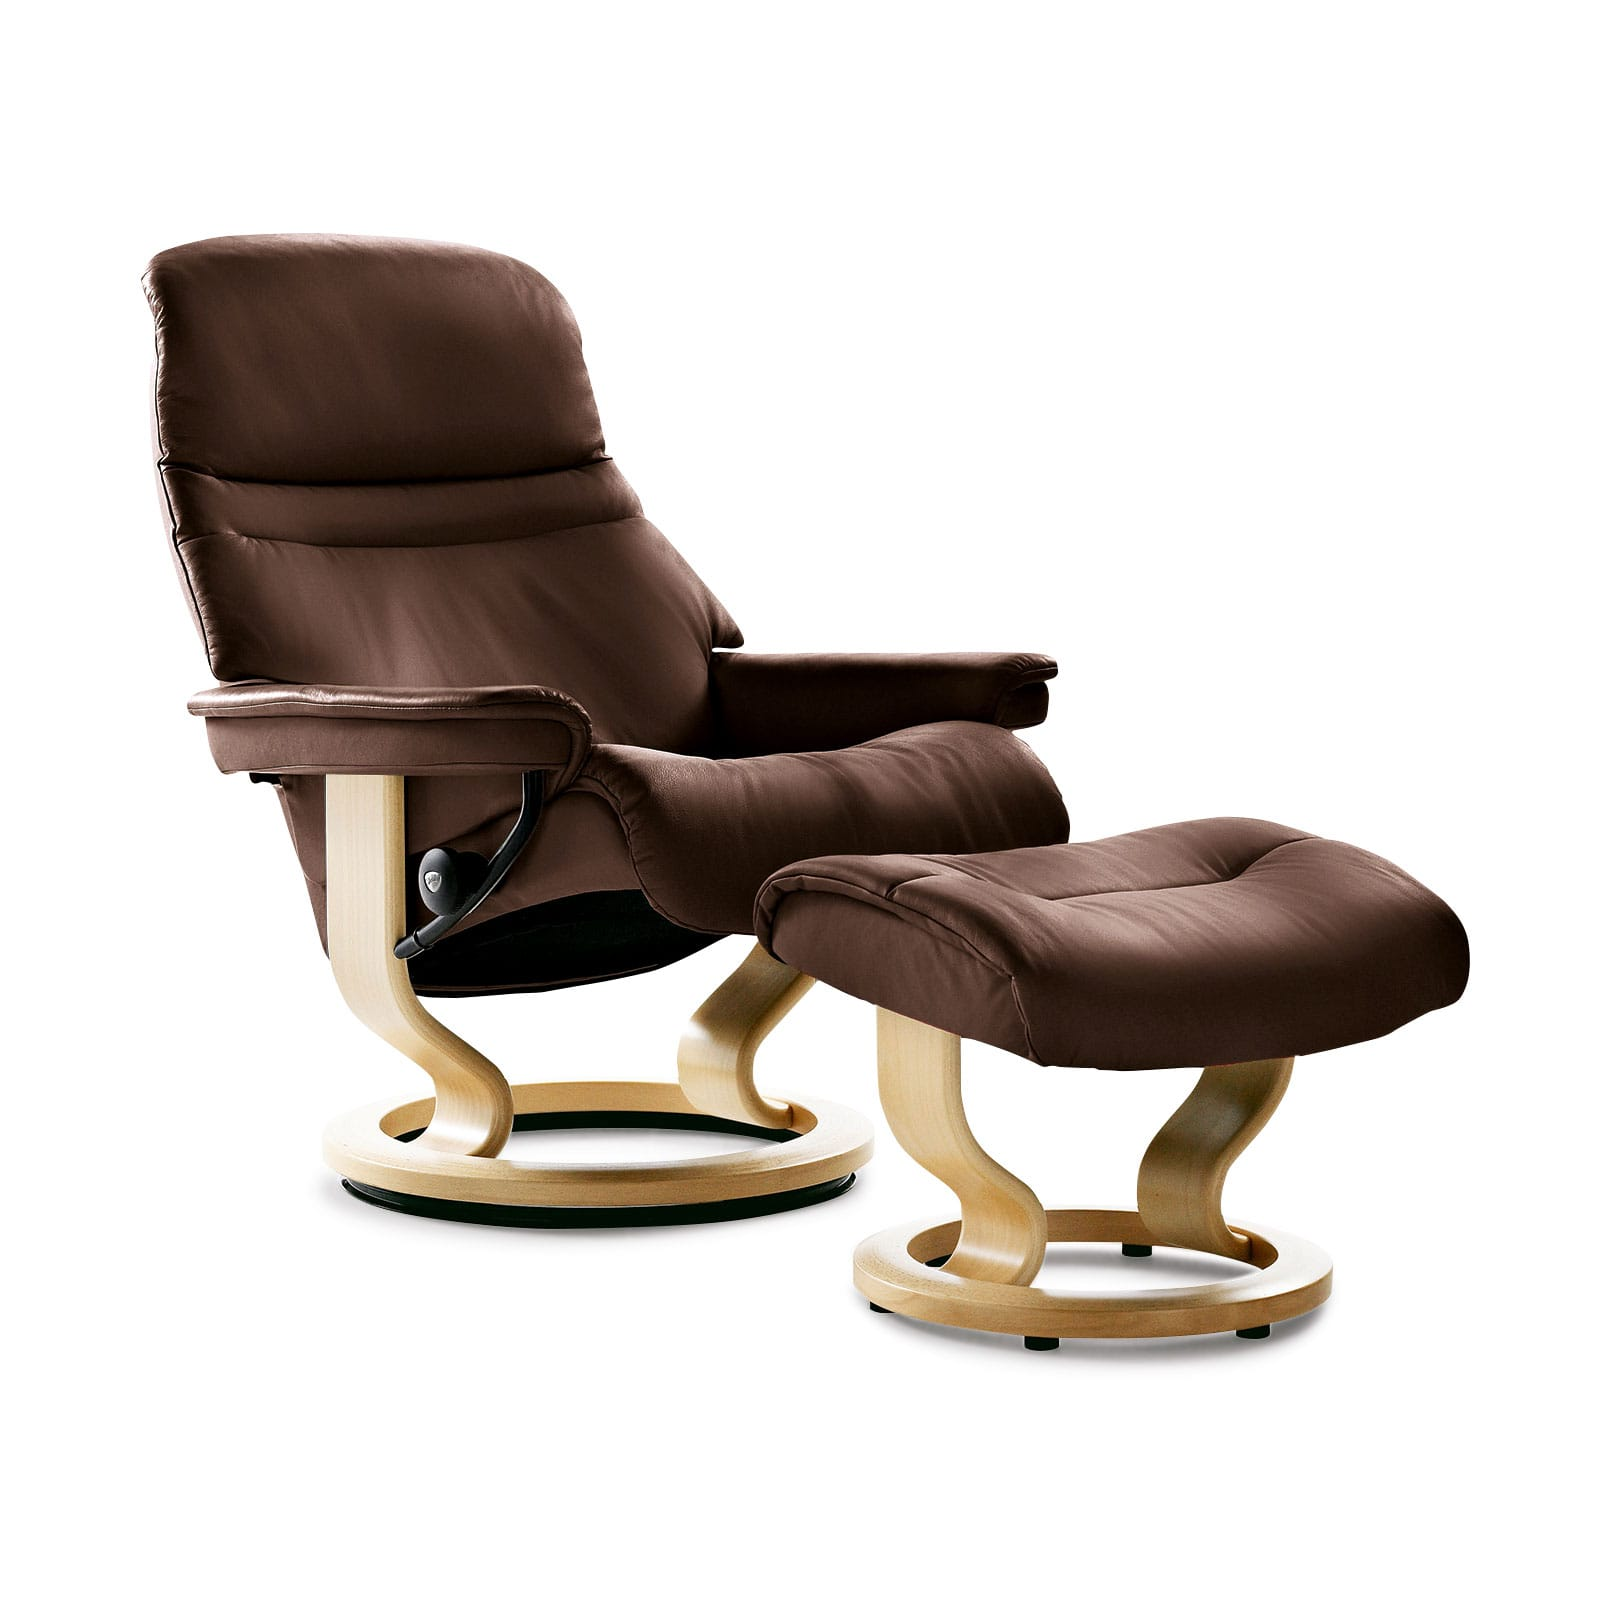 Stressless Sessel Stressless Sessel Sunrise M Batick Brown Mit Hocker